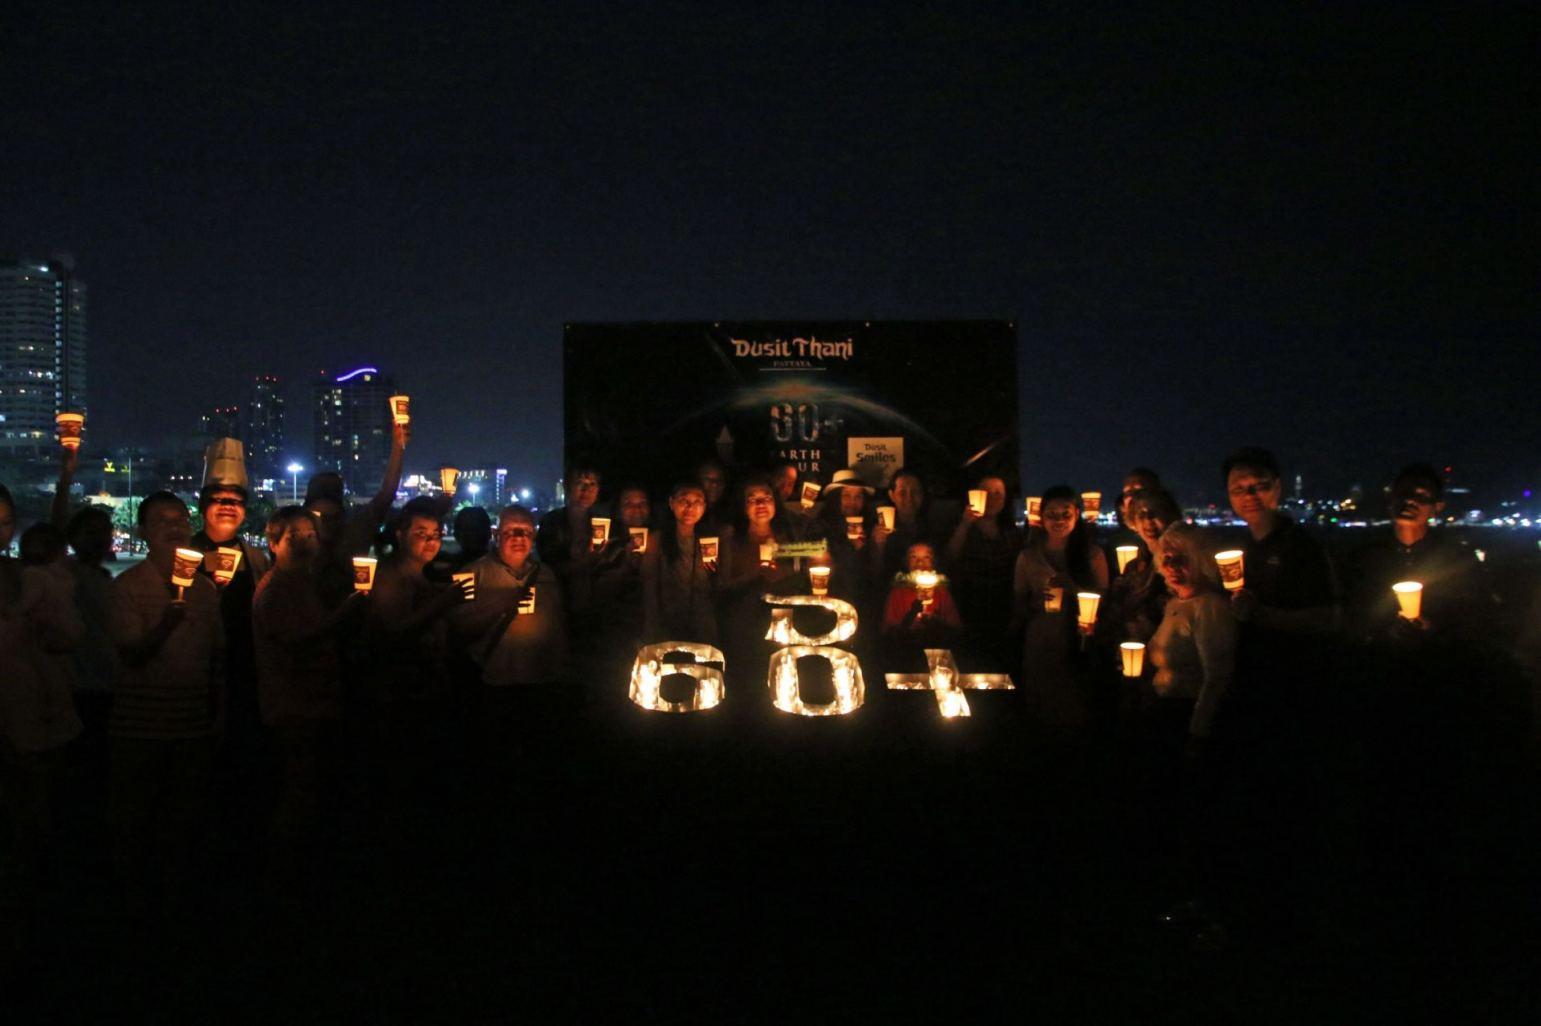 #CONNECT2EARTH, EARTH HOUR 2019 AT DUSIT THANI PAT